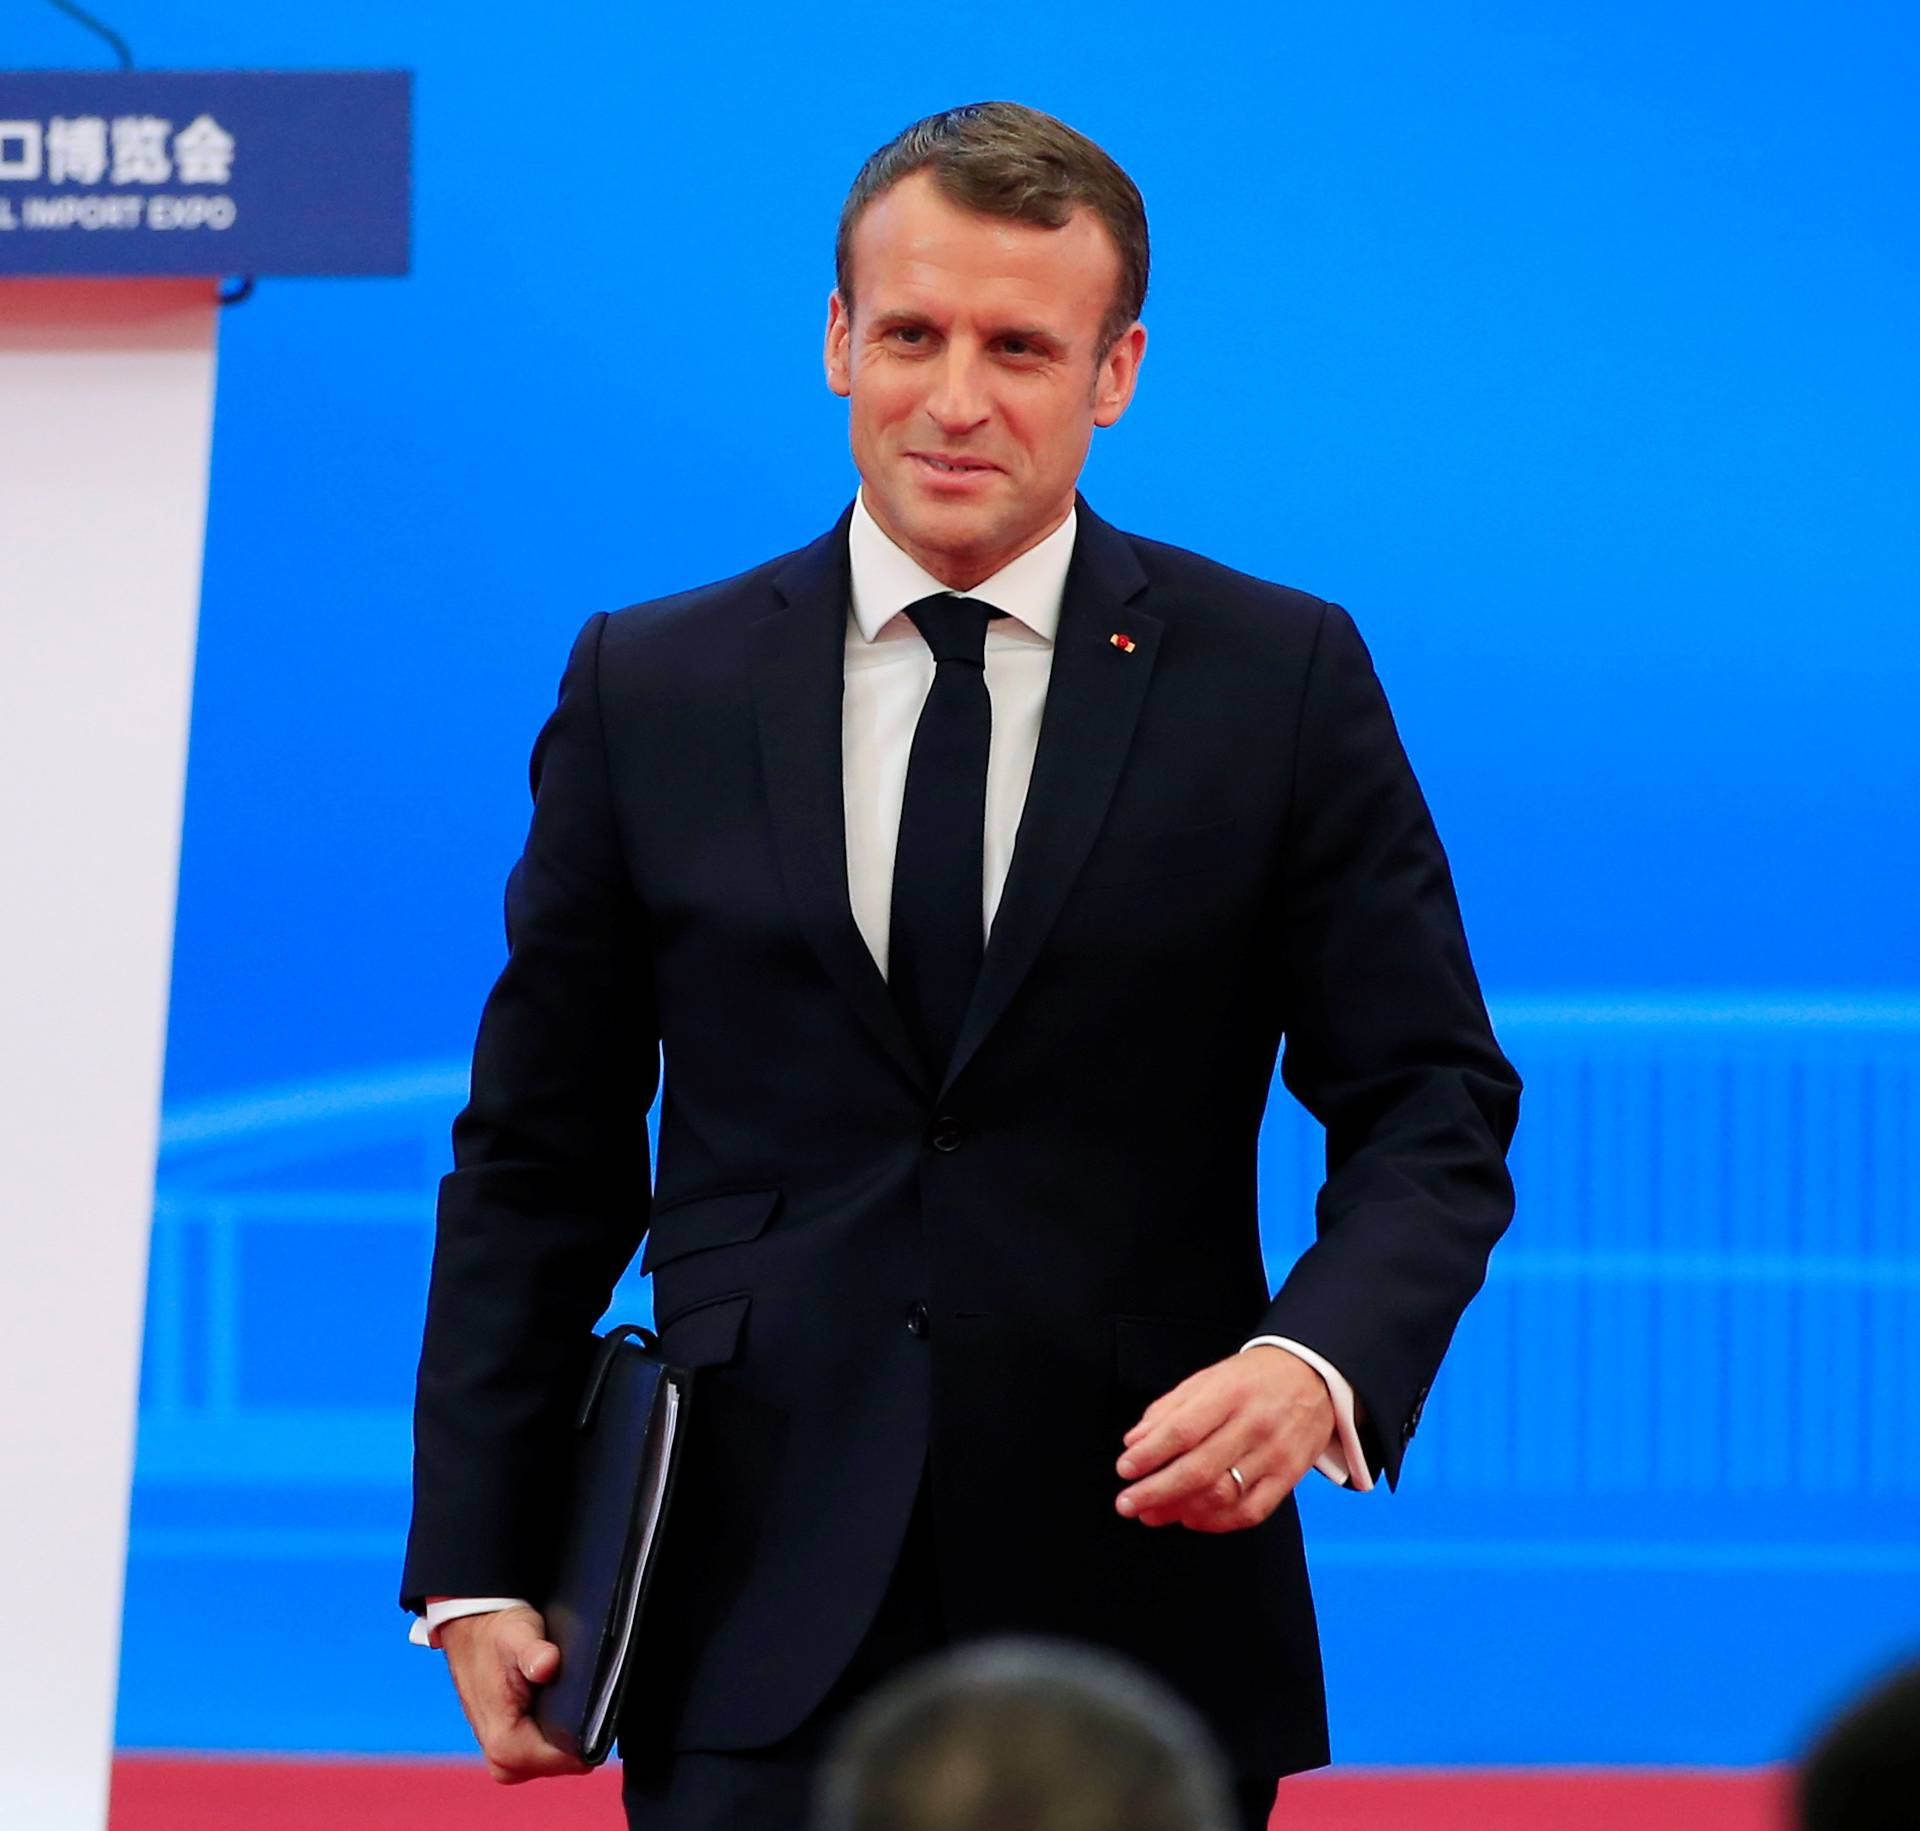 French President Emmanuel Macron returns to his seat following his speech at the opening ceremony of the second China International Import Expo (CIIE) in Shanghai